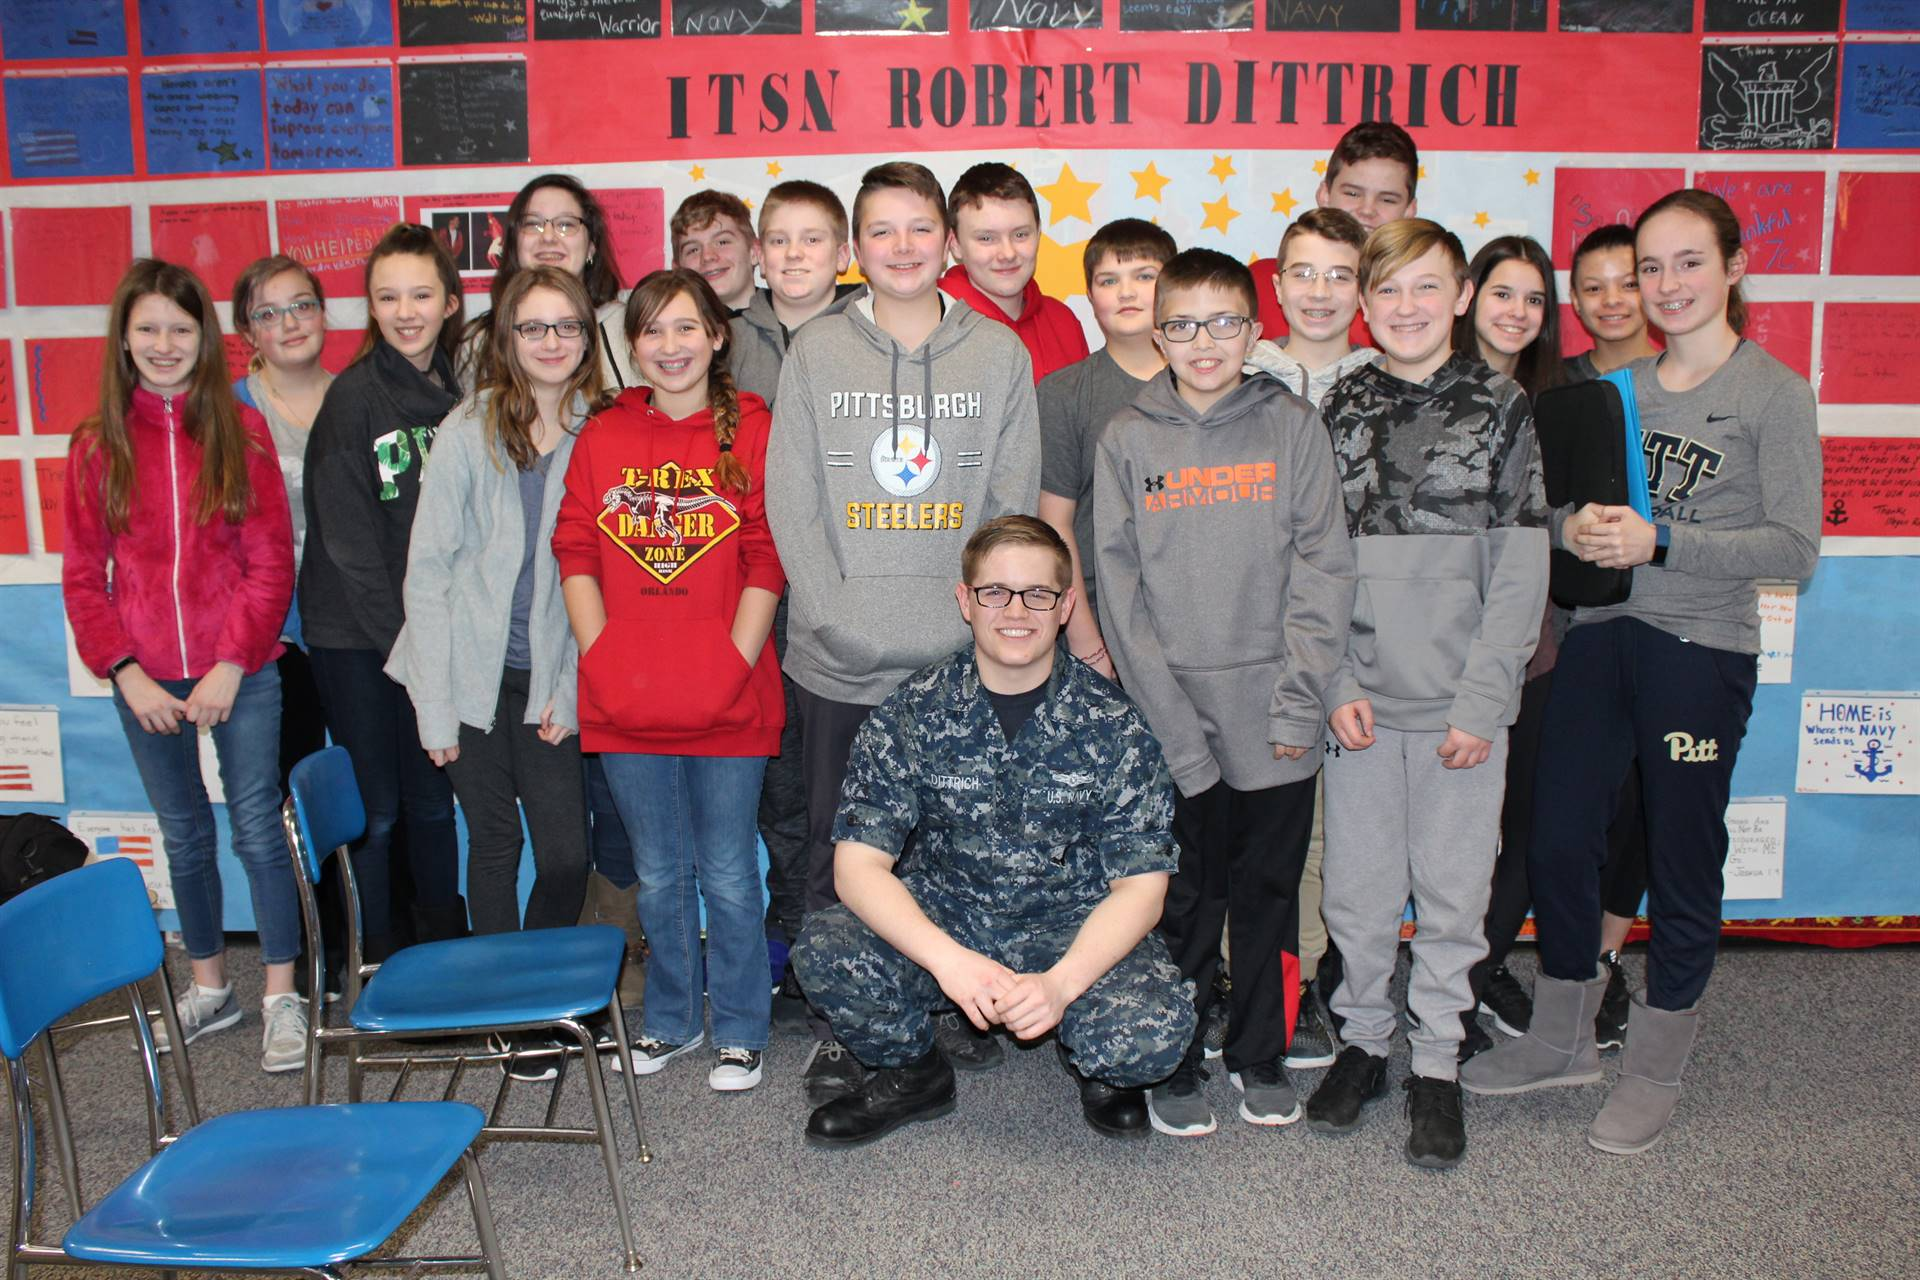 The students with ITSN Robert Dittrich